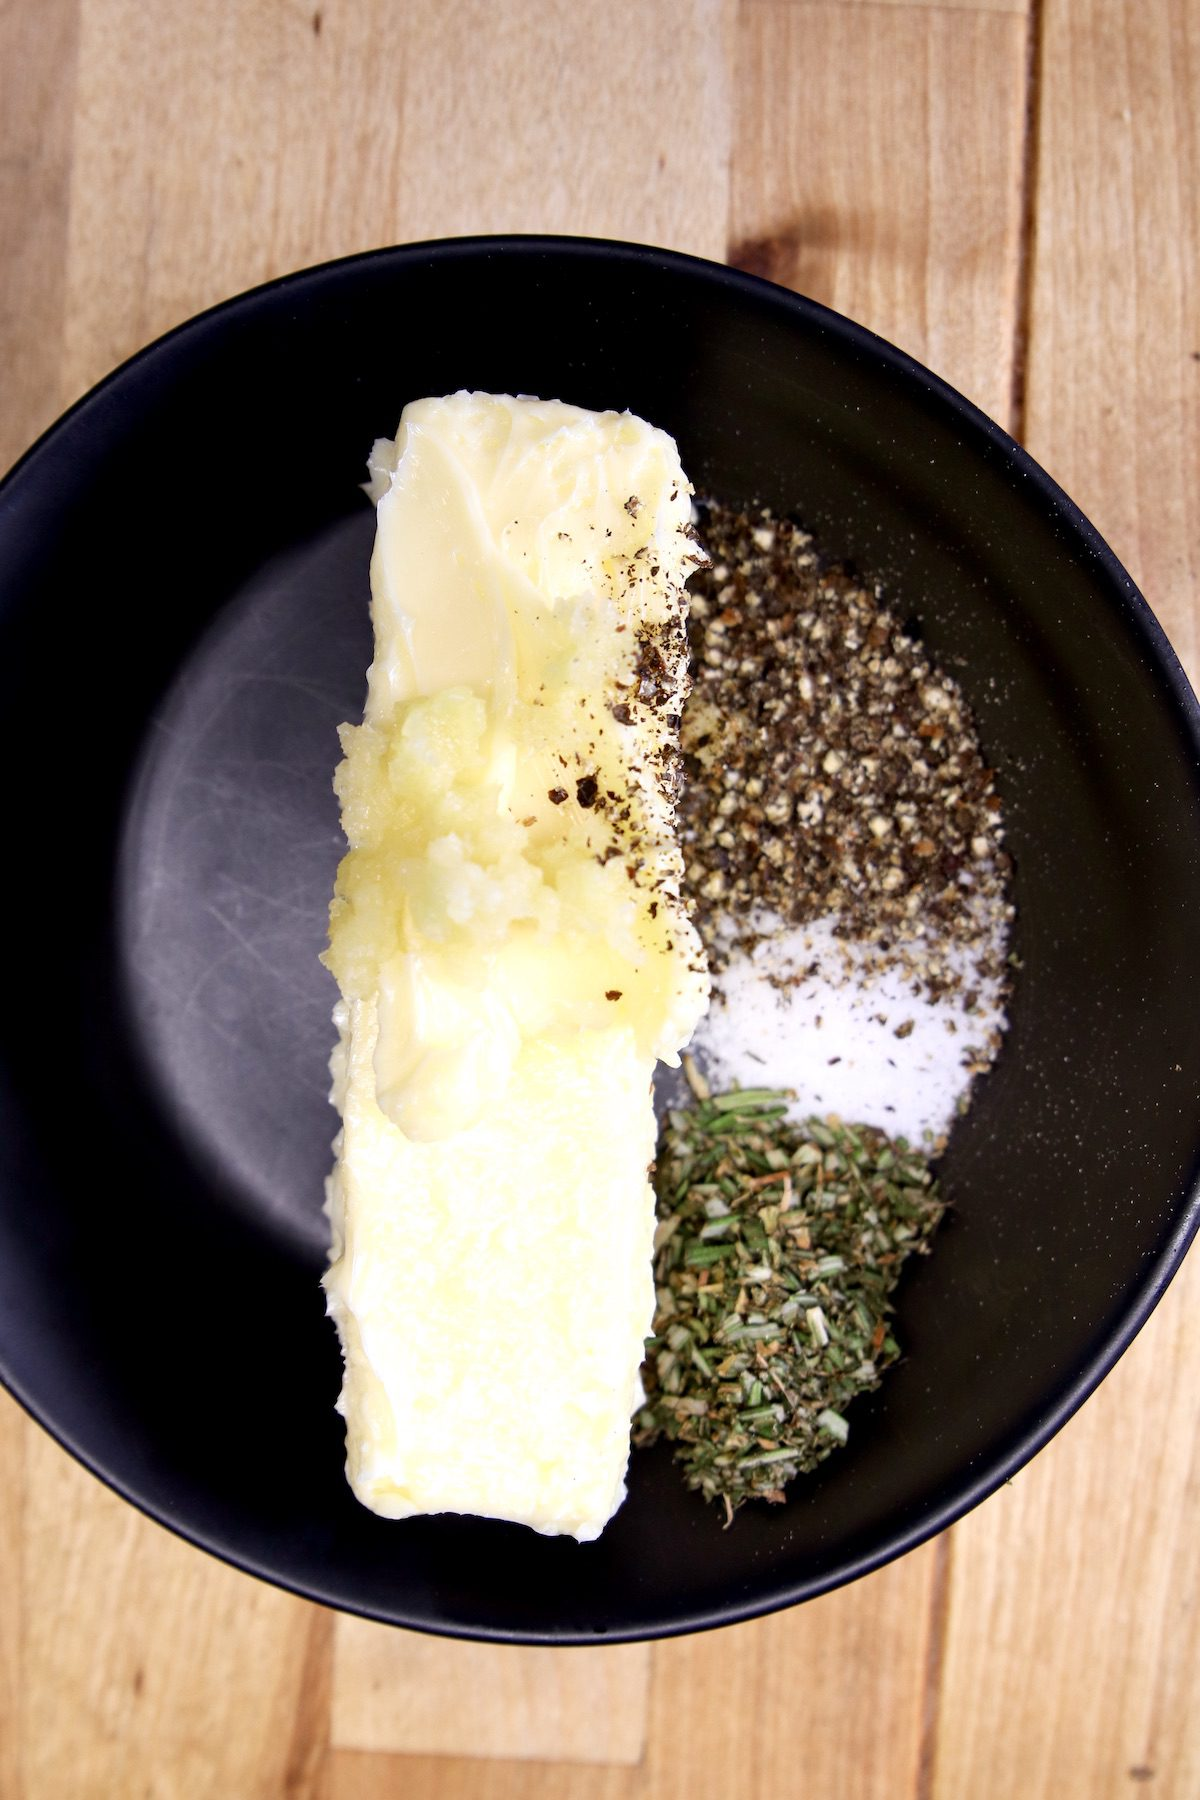 butter with minced garlic, rosemary, salt and pepper in a black bowl